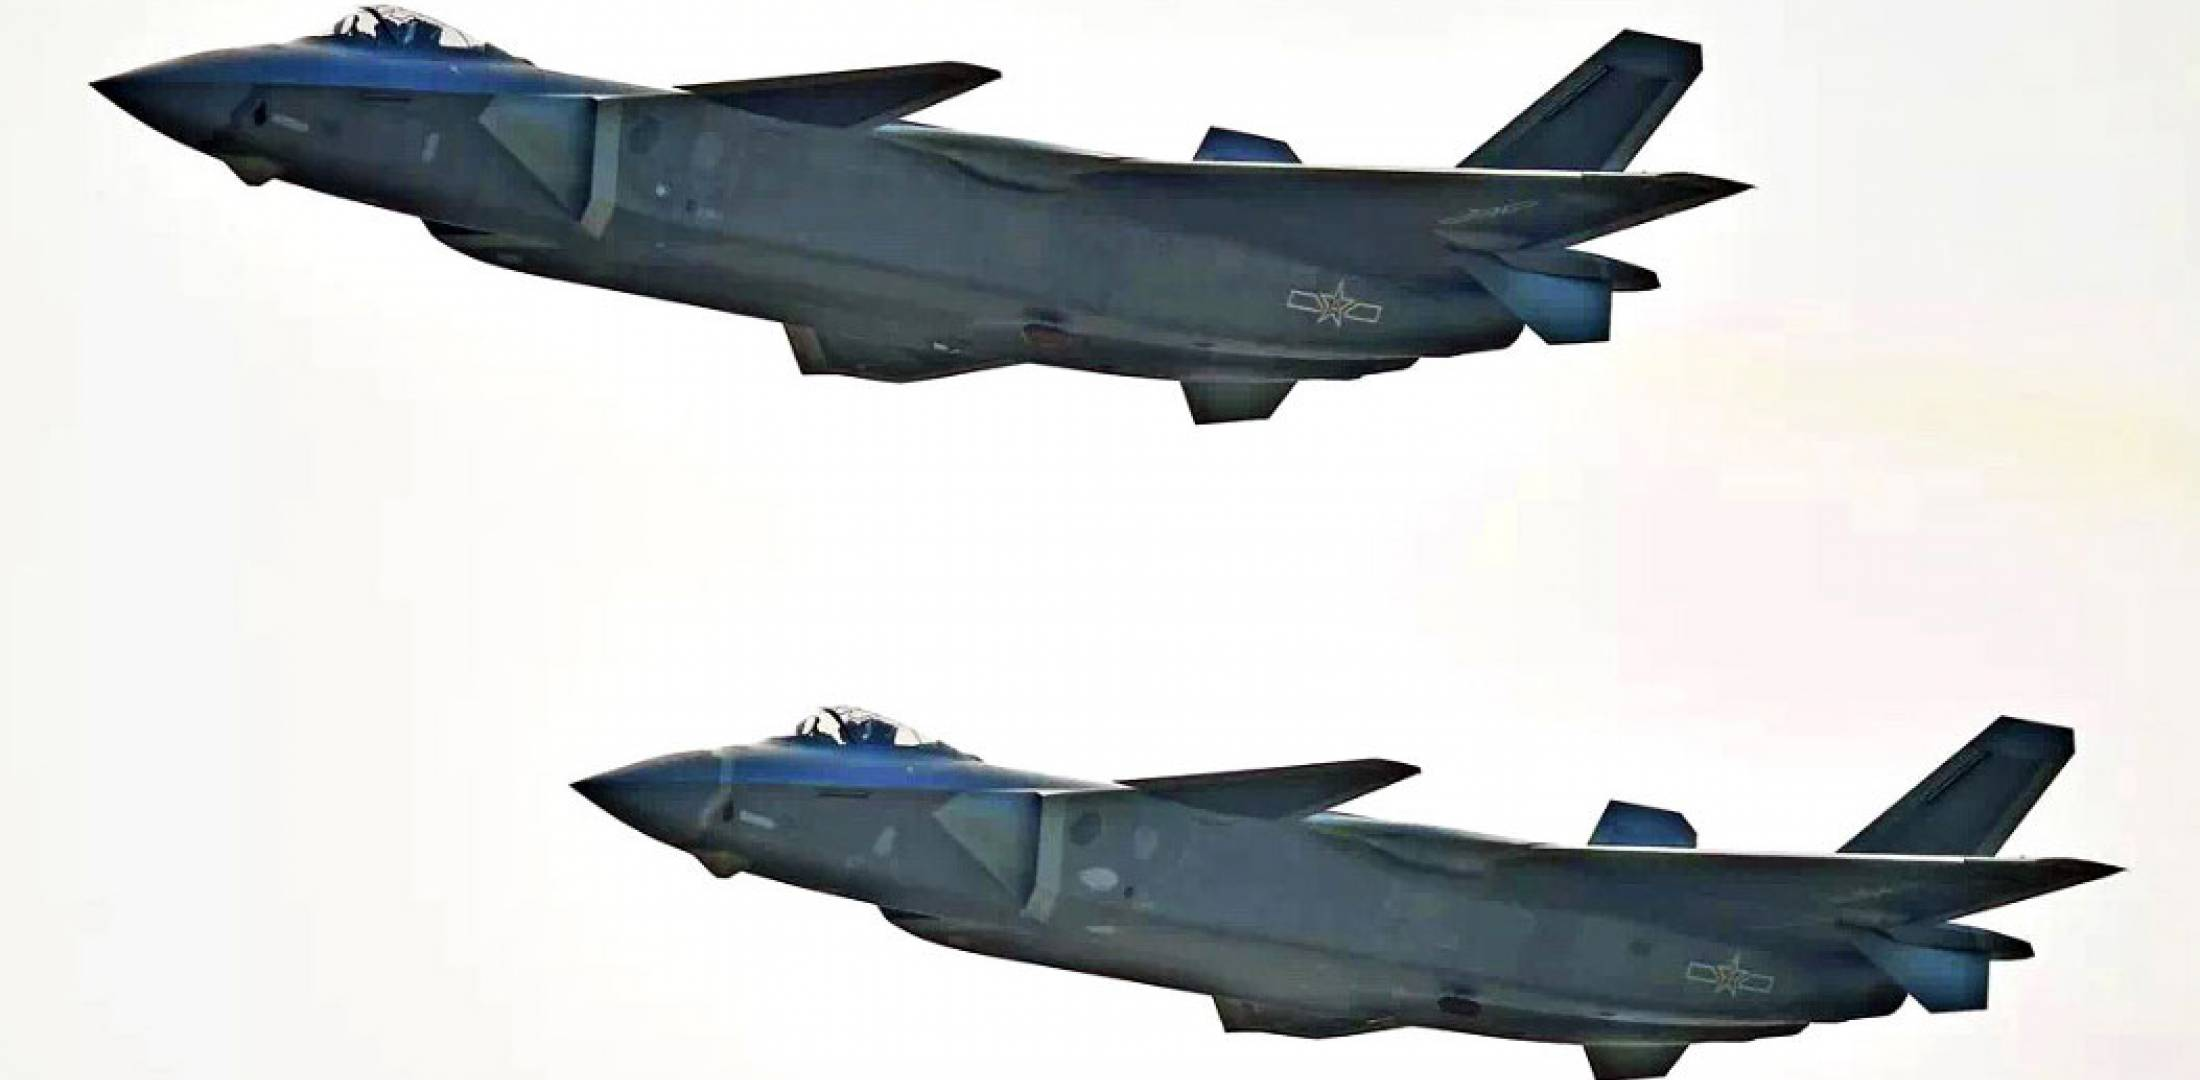 J-20s in flight